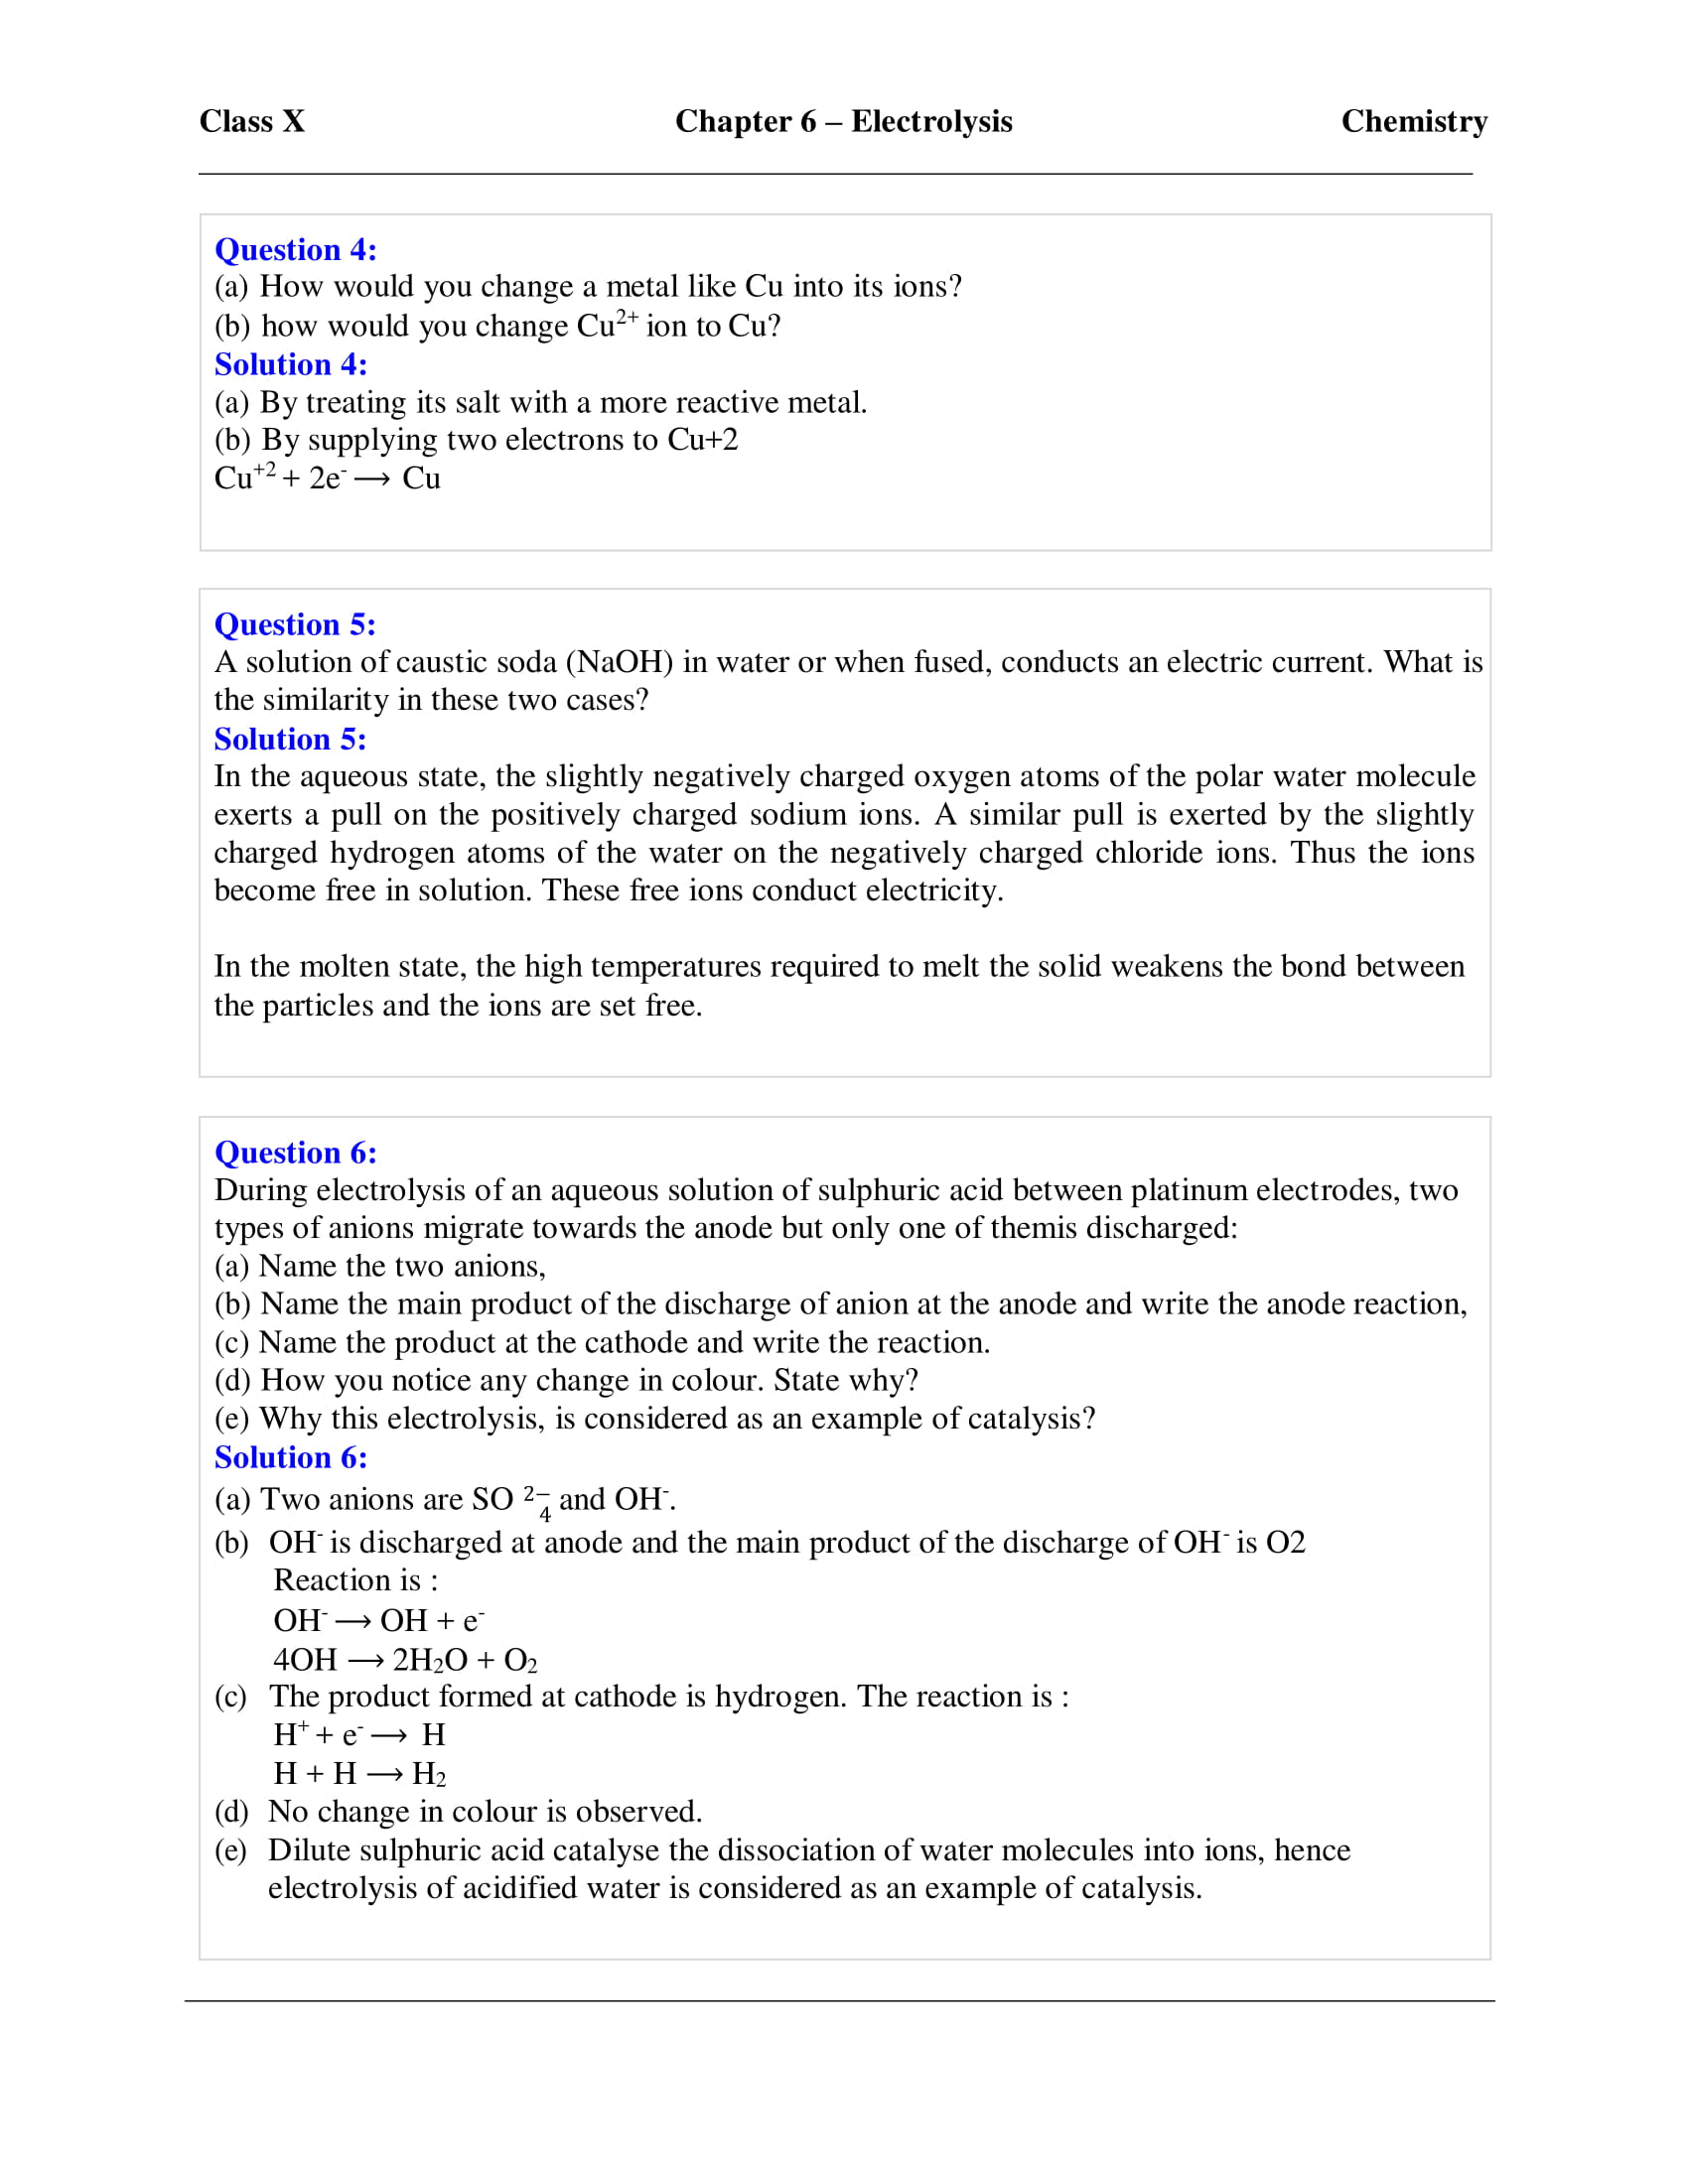 icse-selina-chemistry-solutions-class-10-chapter-6-electrolysis-05